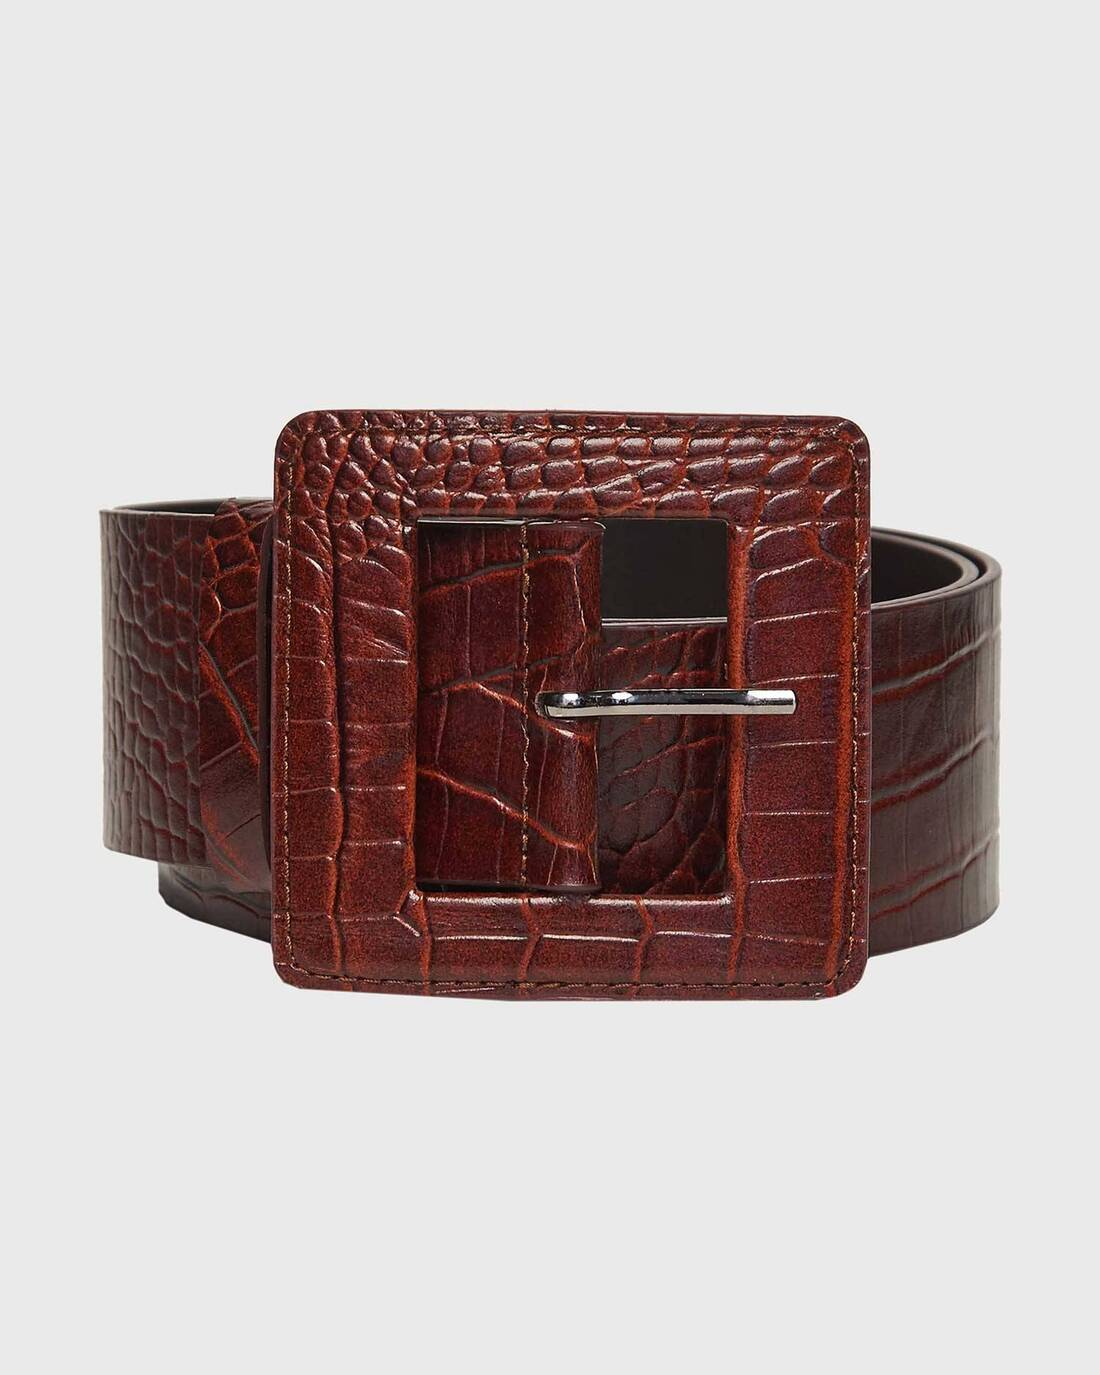 Wide leather belt with square buckle